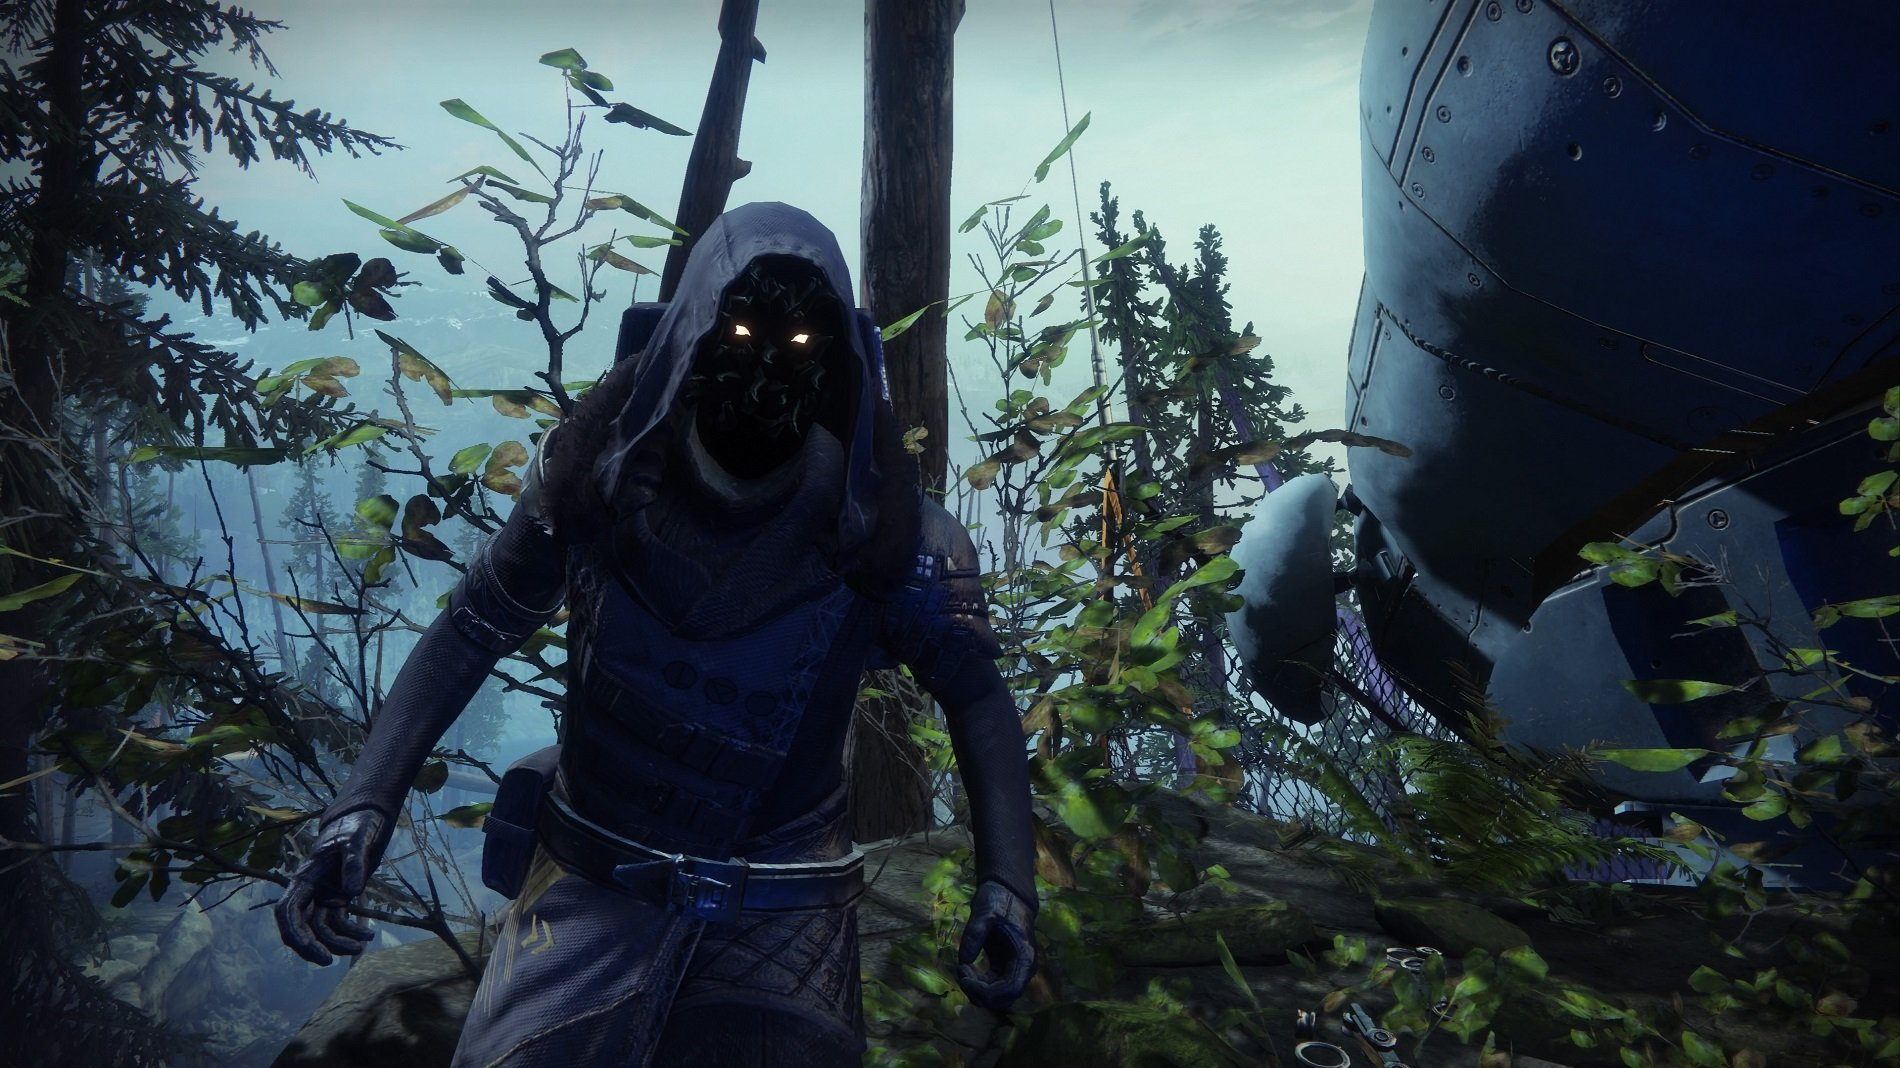 Where to find Xur in Destiny 2 - March 13, 2020